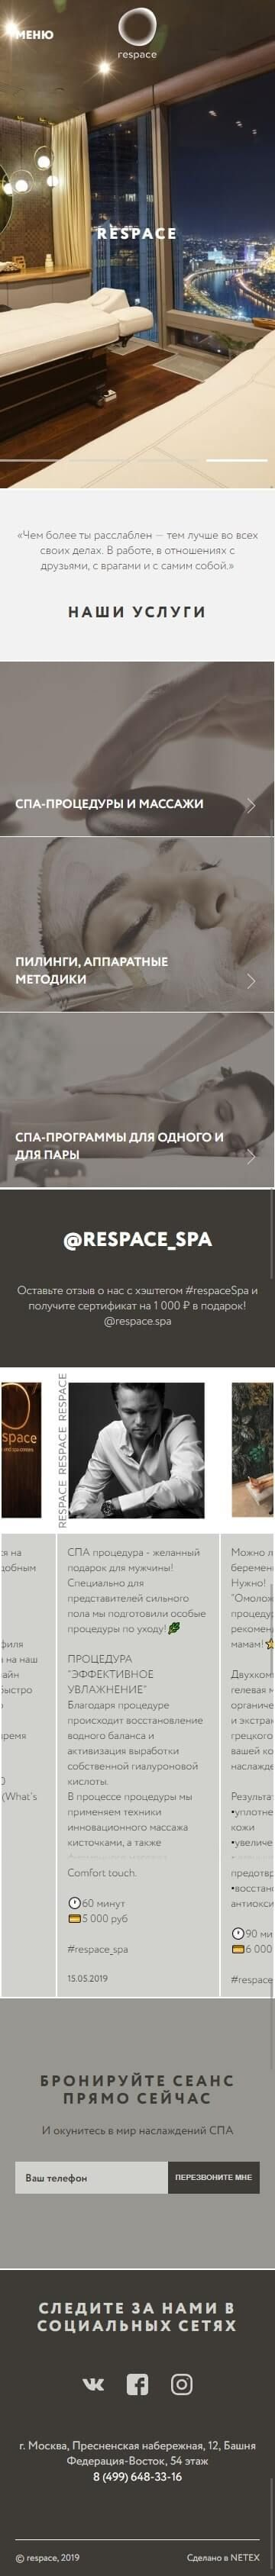 image of the mobile version of the site «Respace»